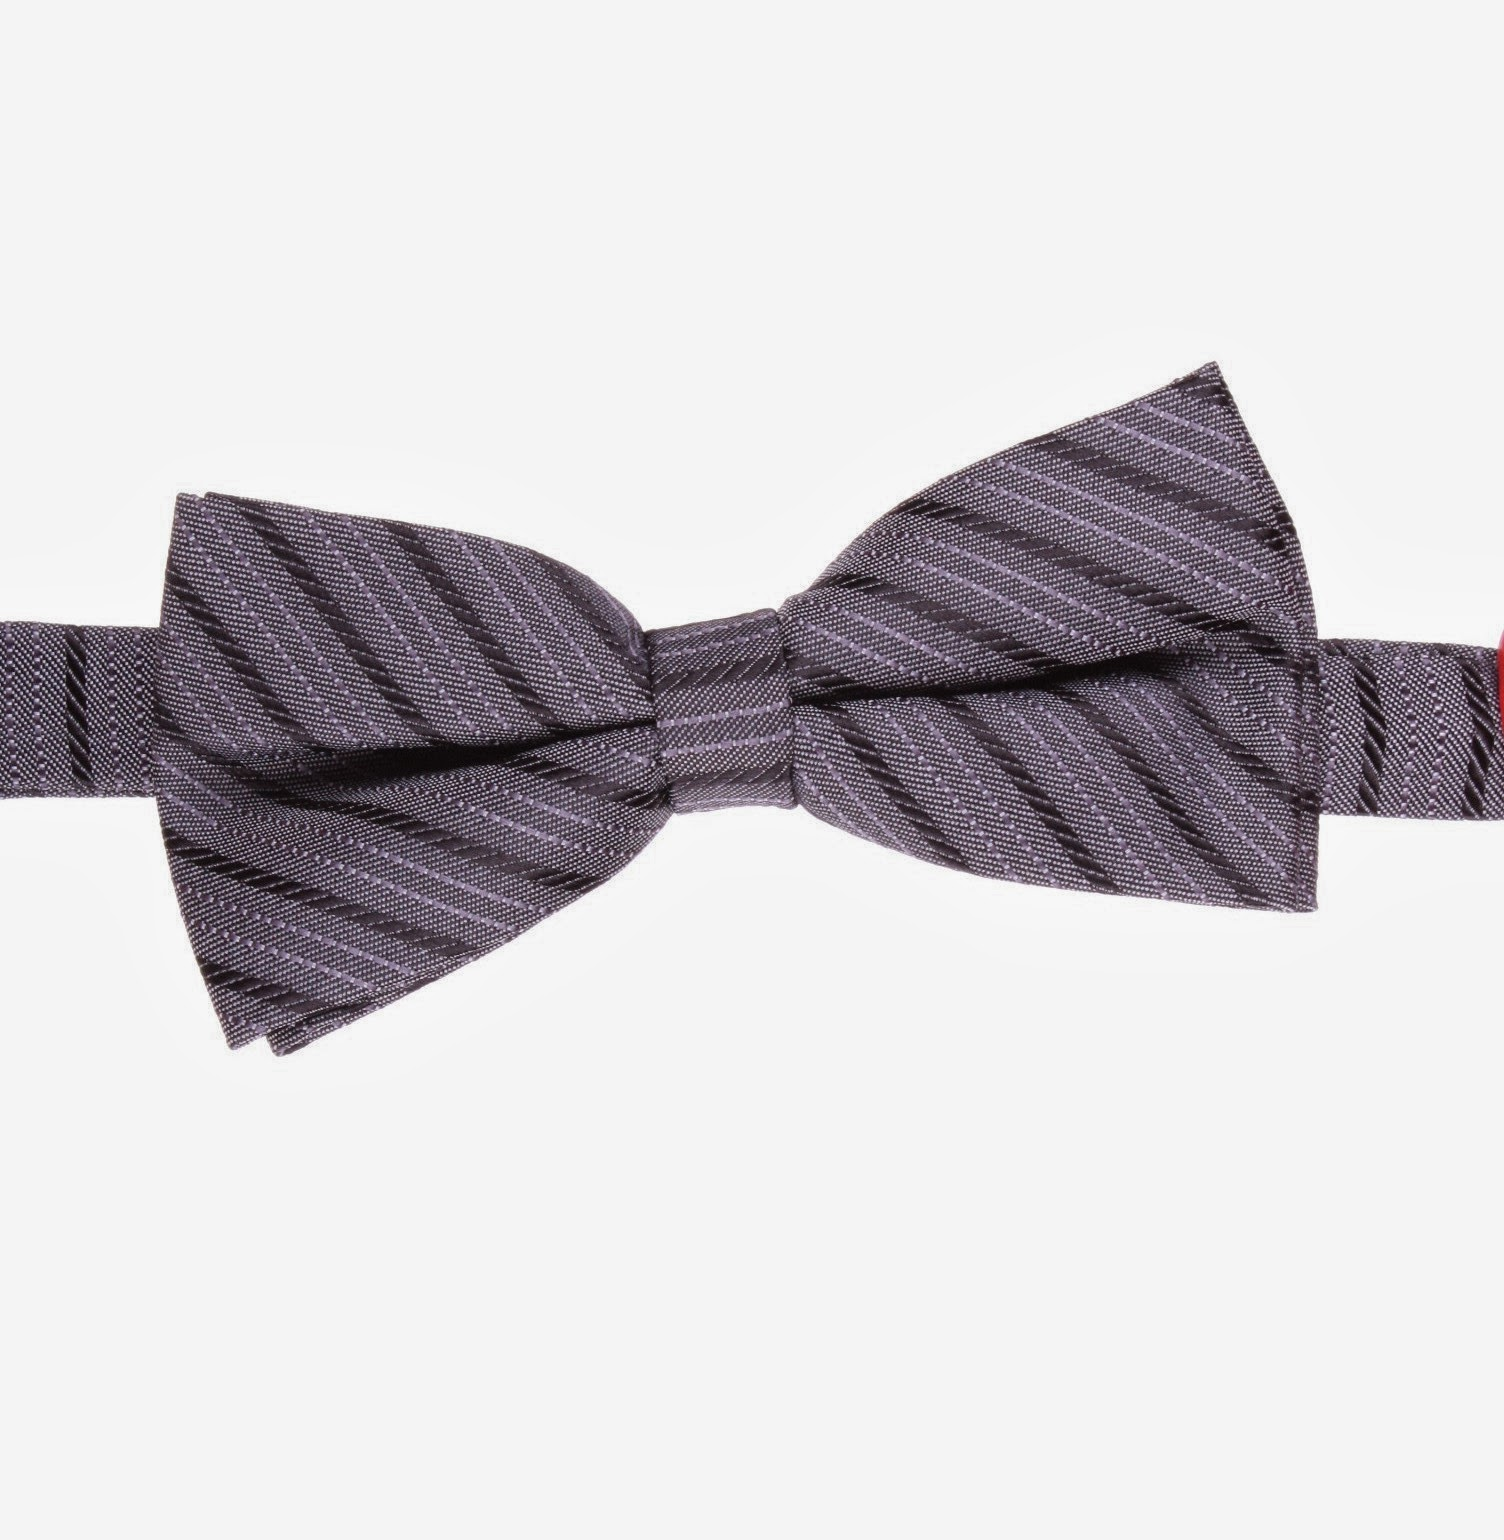 Tiecoon.com 50% discount on ties and bowties